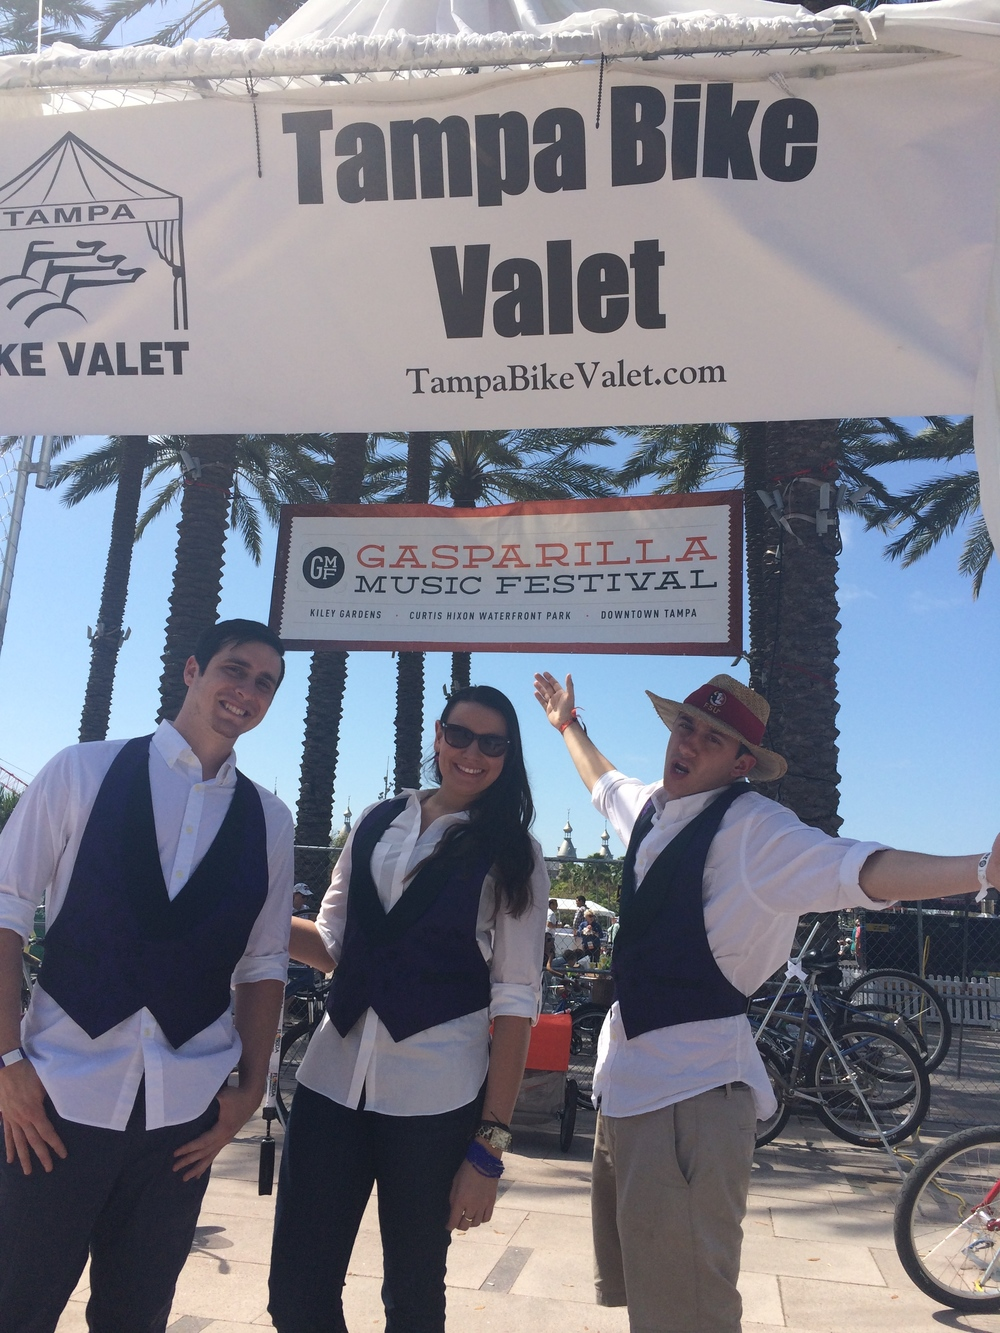 JOIN OUR TEAM OF BIKE VALETS